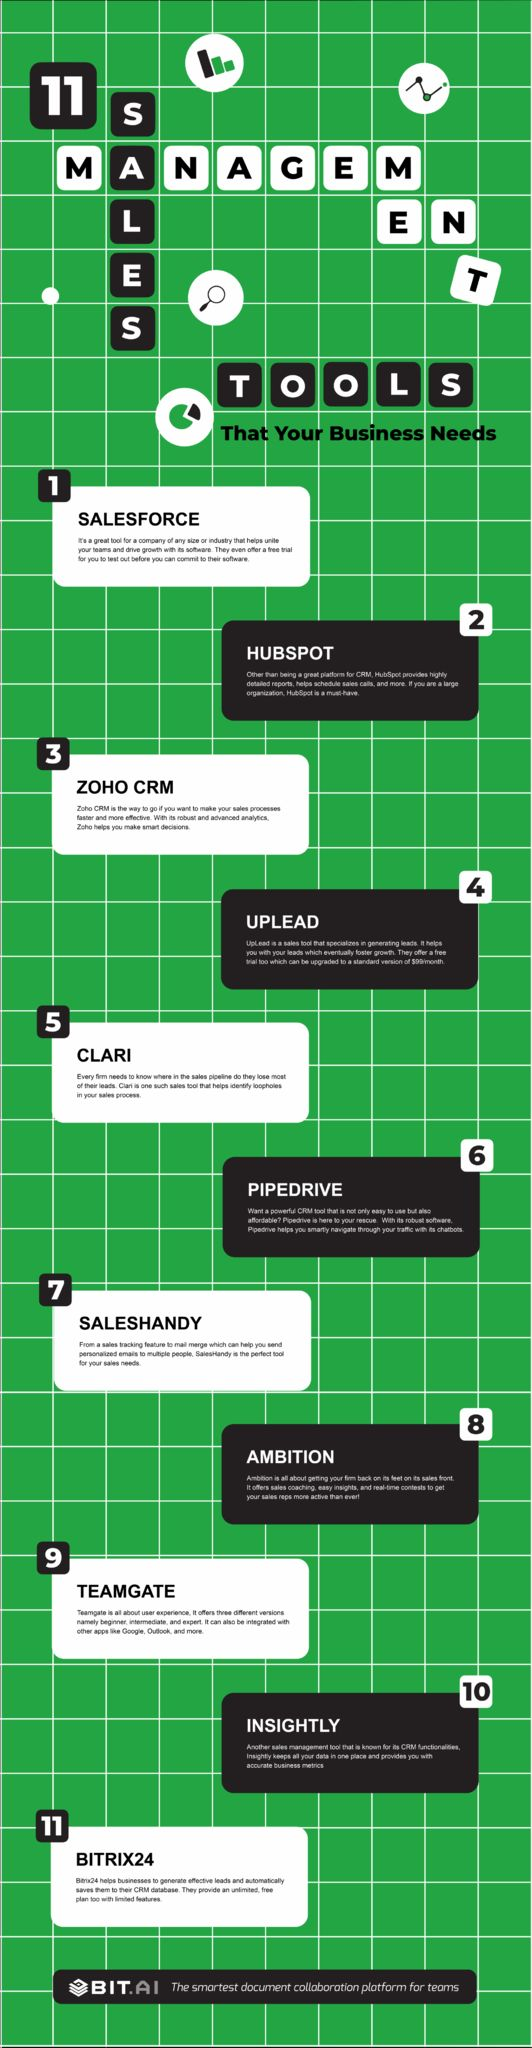 Sales management tools infographic